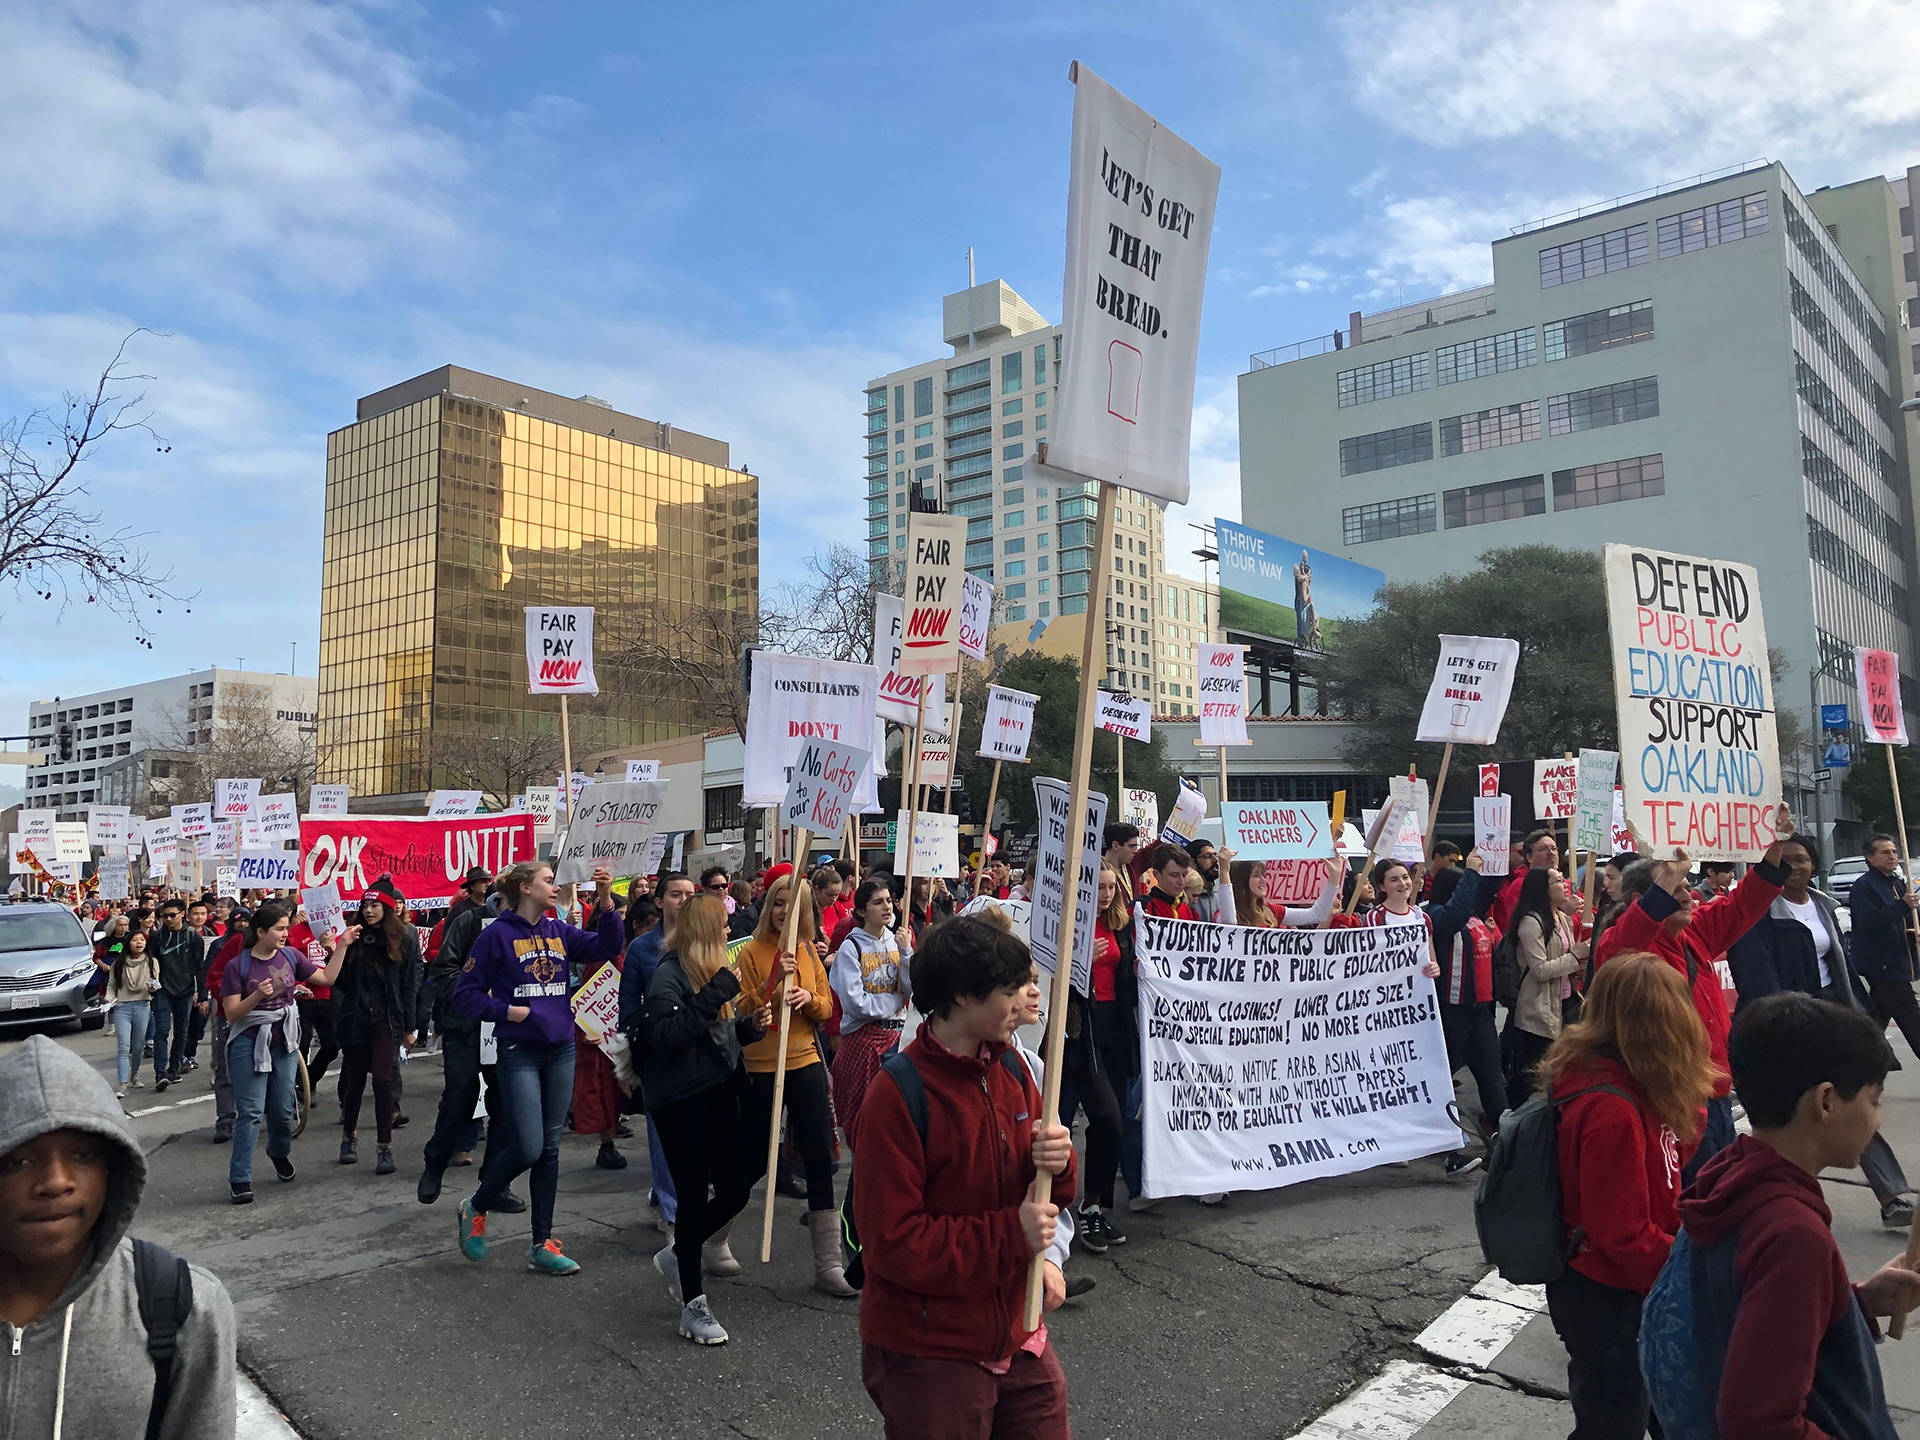 Hundreds of Oakland teachers, students and supporters, frustrated over an impasse in contract negotiations with the school district, gathered outside Oakland Technical High School and then marched in a walkout on Jan. 18, 2019. Ryan Levi/KQED